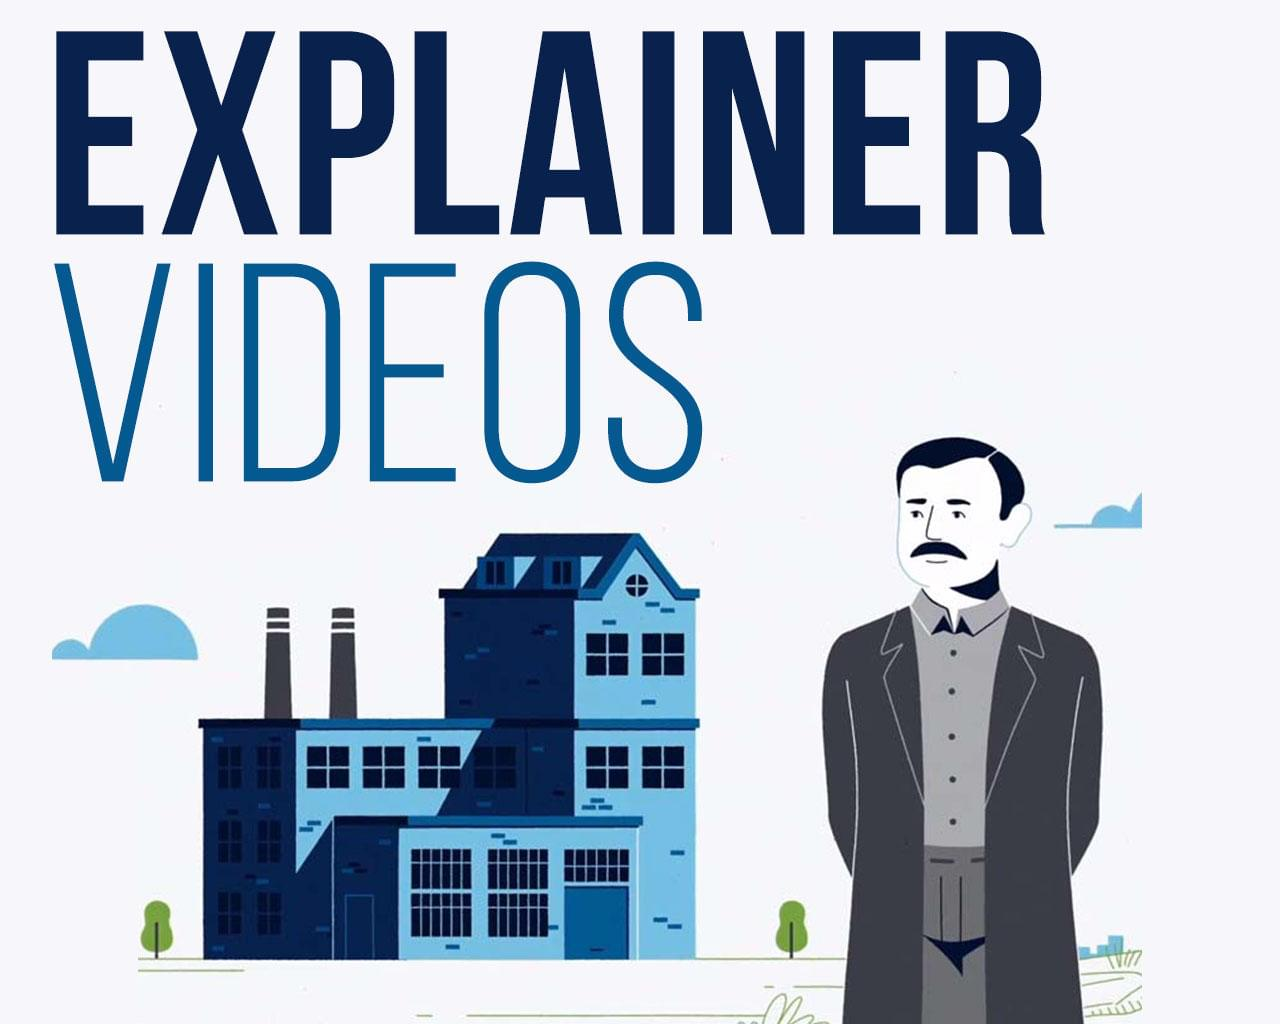 Animated Explainer Video / Startup Video by crazysheep_studio - 114923